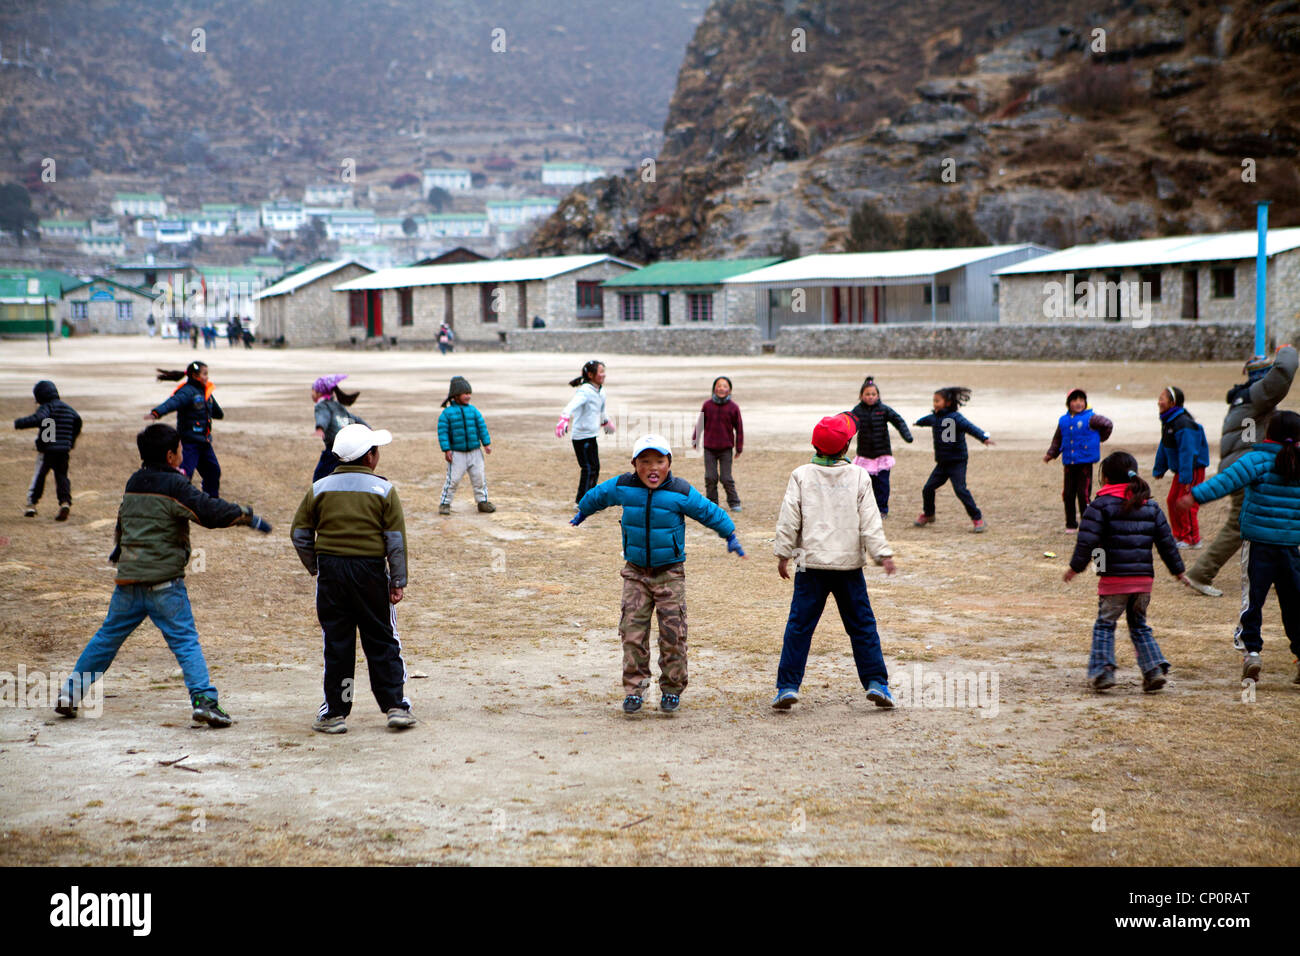 Children exercising at the Khumjung school above Namche Bazaar, built by Sir Edmund Hillary - Stock Image